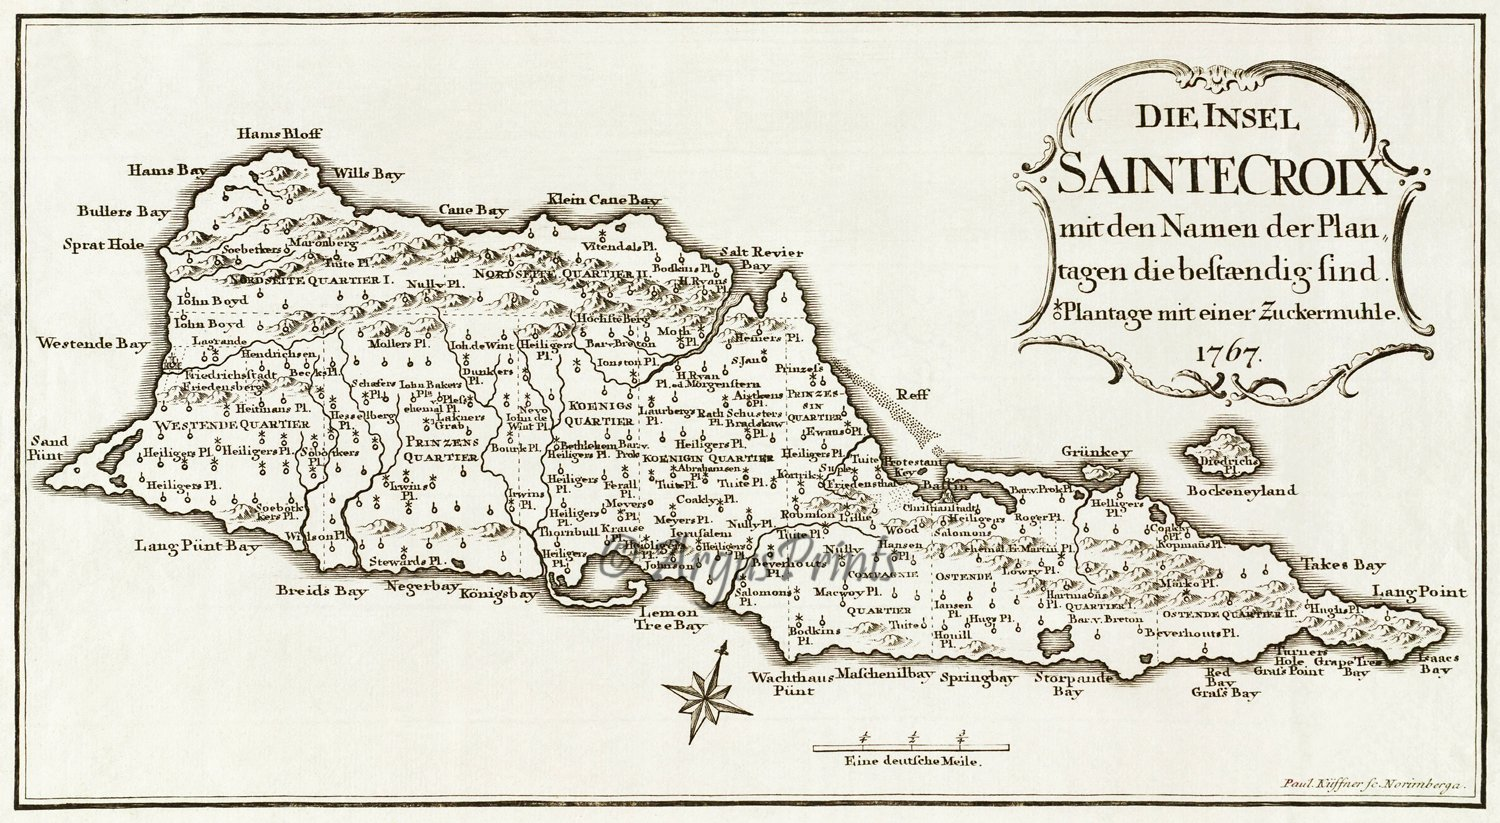 st croix danish west indies us virgin islands 1767 plantation caribbean map by paul kussner